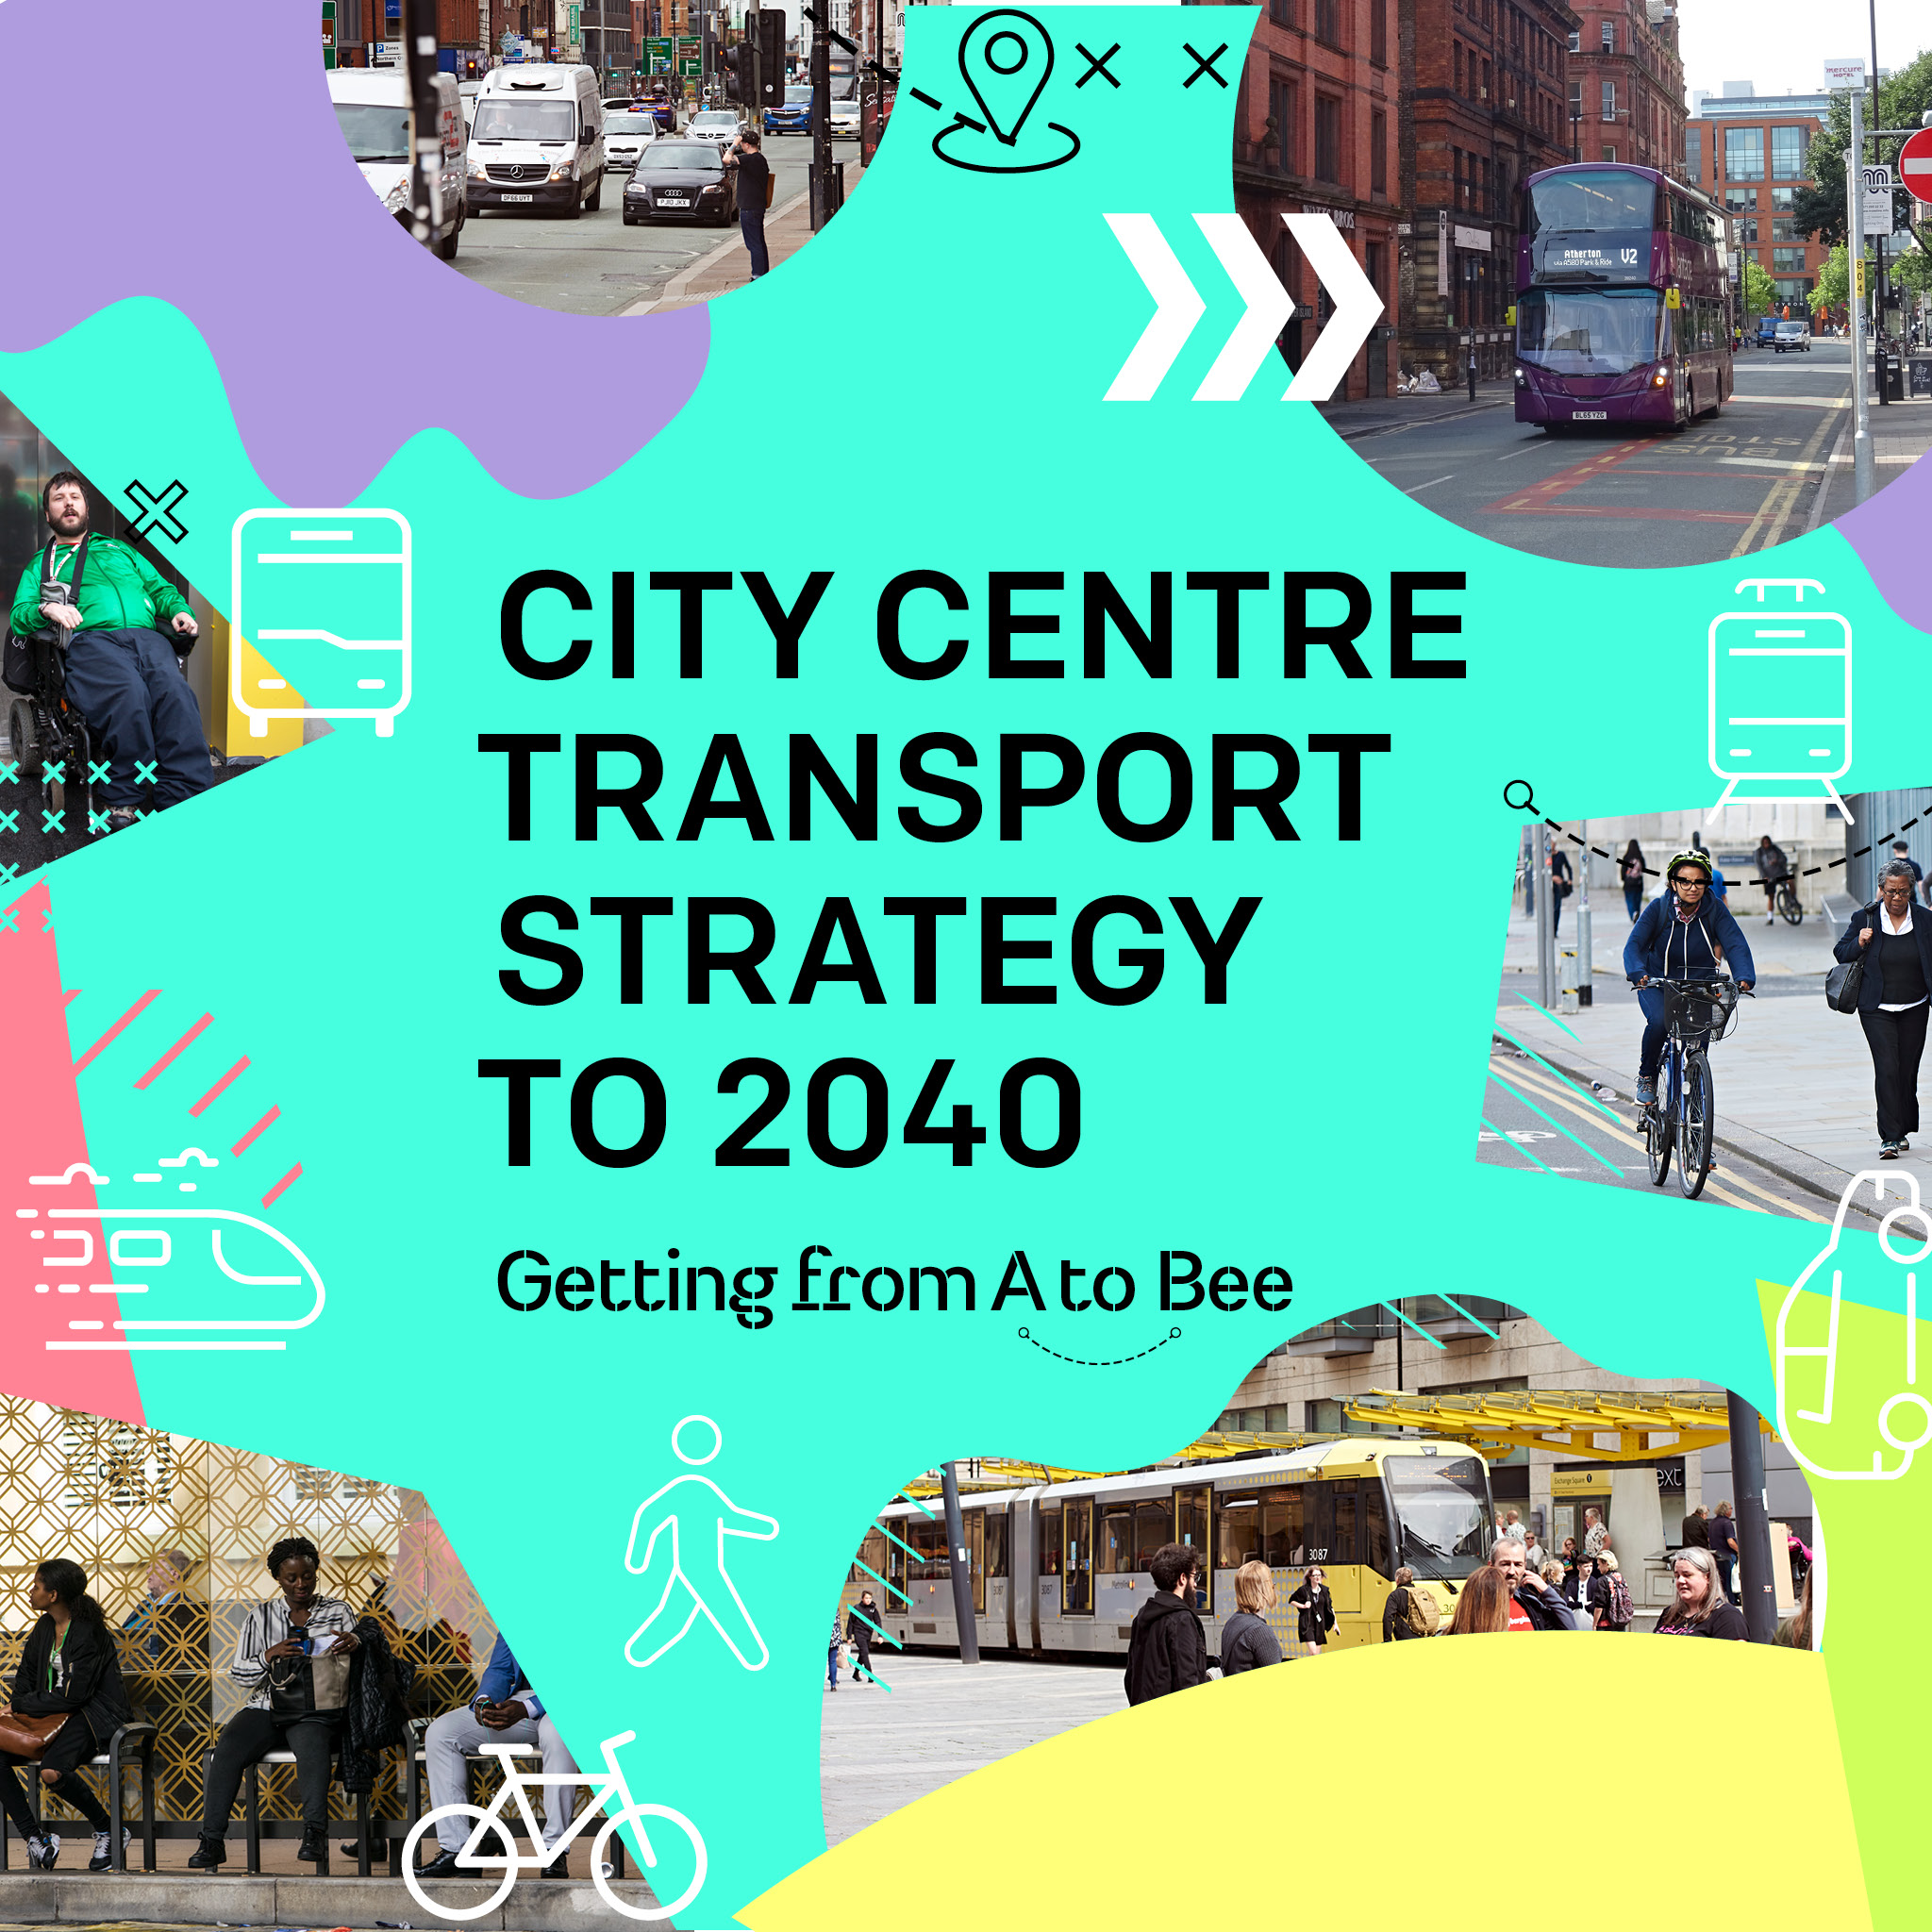 20-0520 City Centre Transport Strategy organic